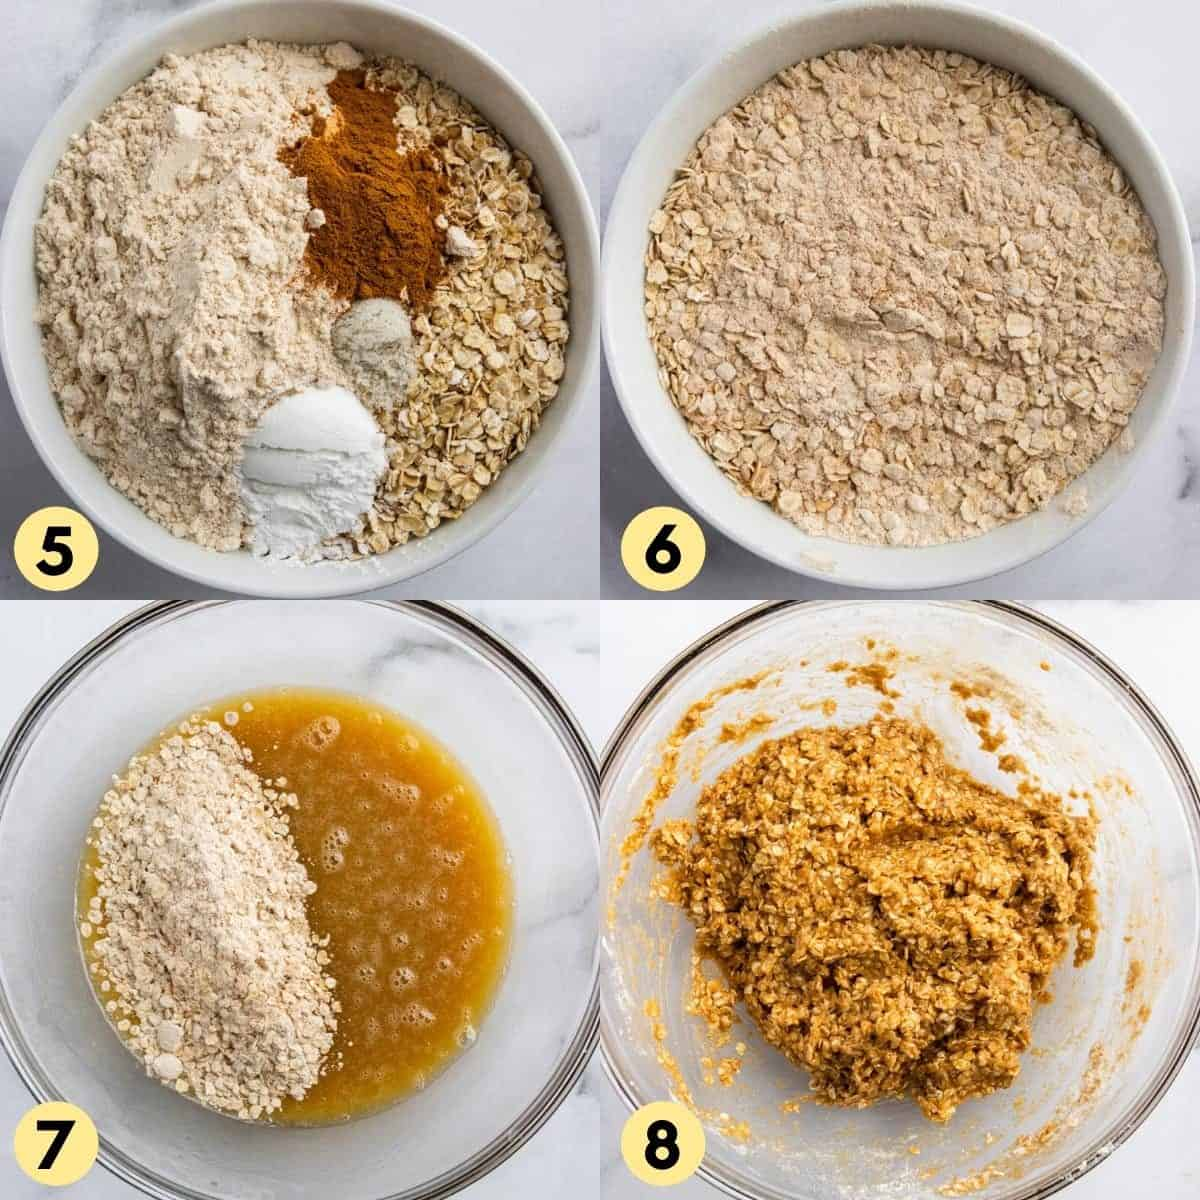 Step by step photos to make recipe with dry ingredients.